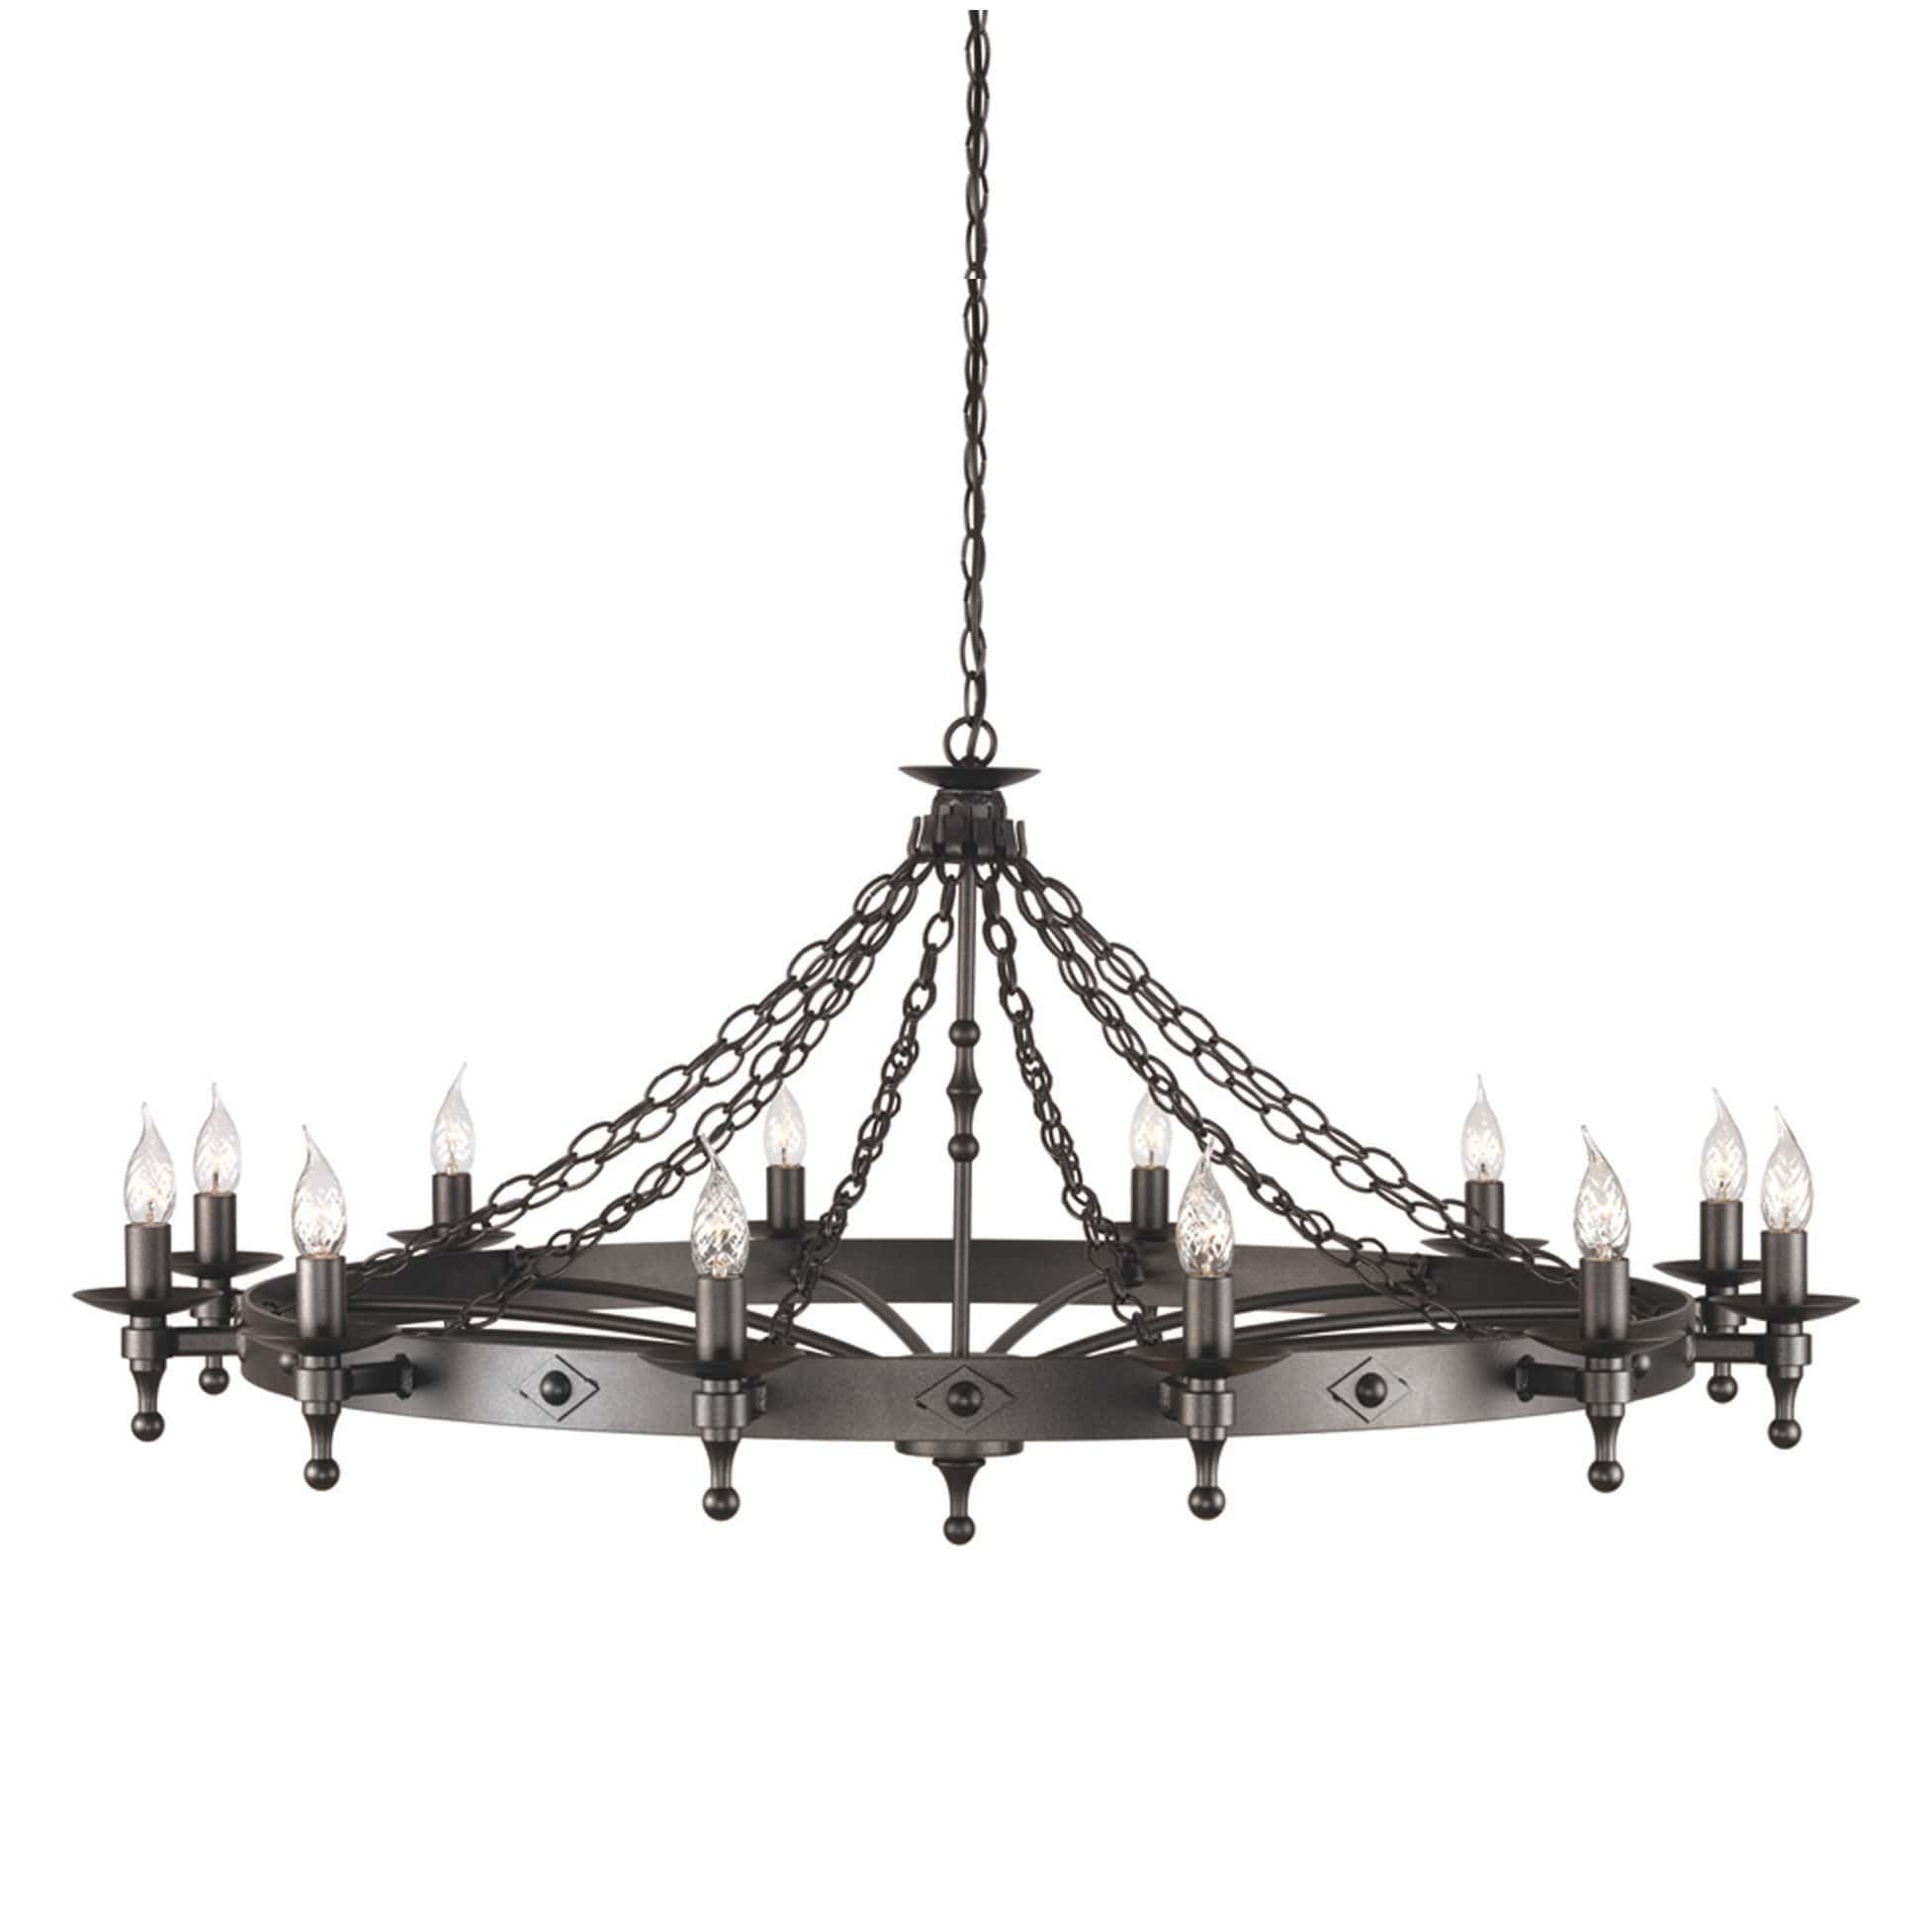 Elstead warwick 12 light black metal candle chandelier home elstead warwick 12 light black metal candle chandelier arubaitofo Choice Image